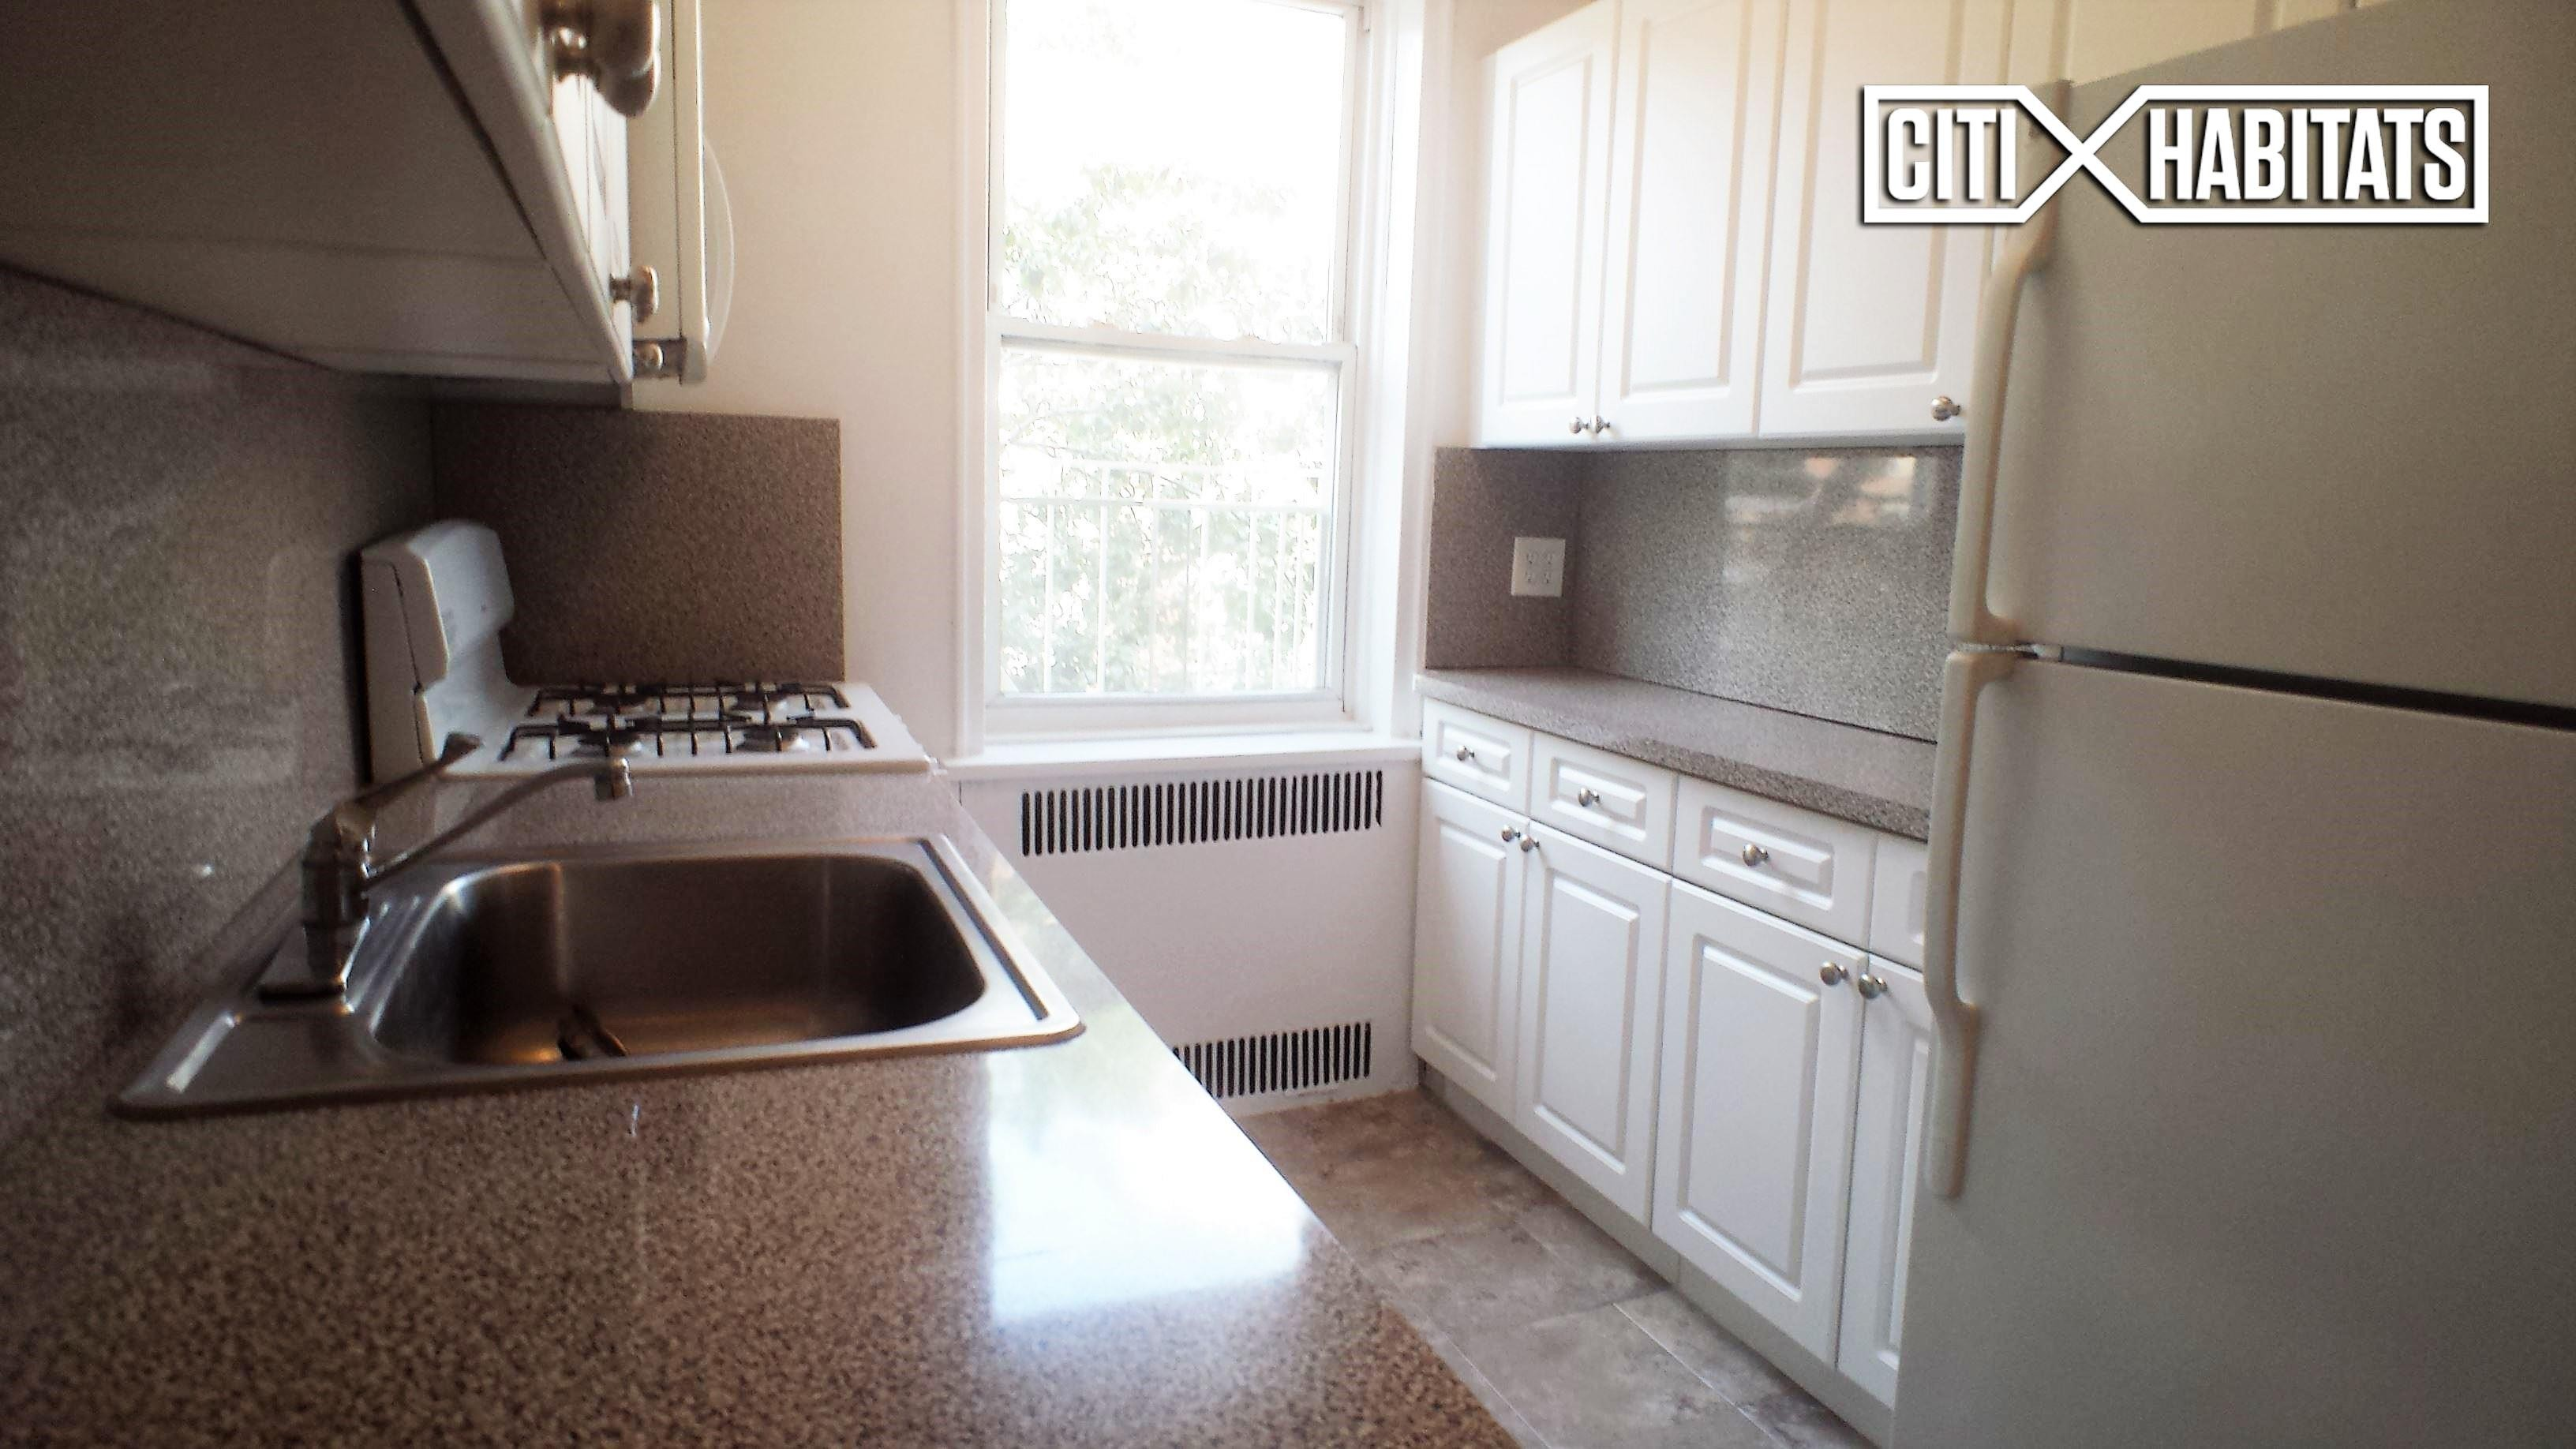 ave 3g bronx ny 10463 2 bedroom apartment for rent padmapper